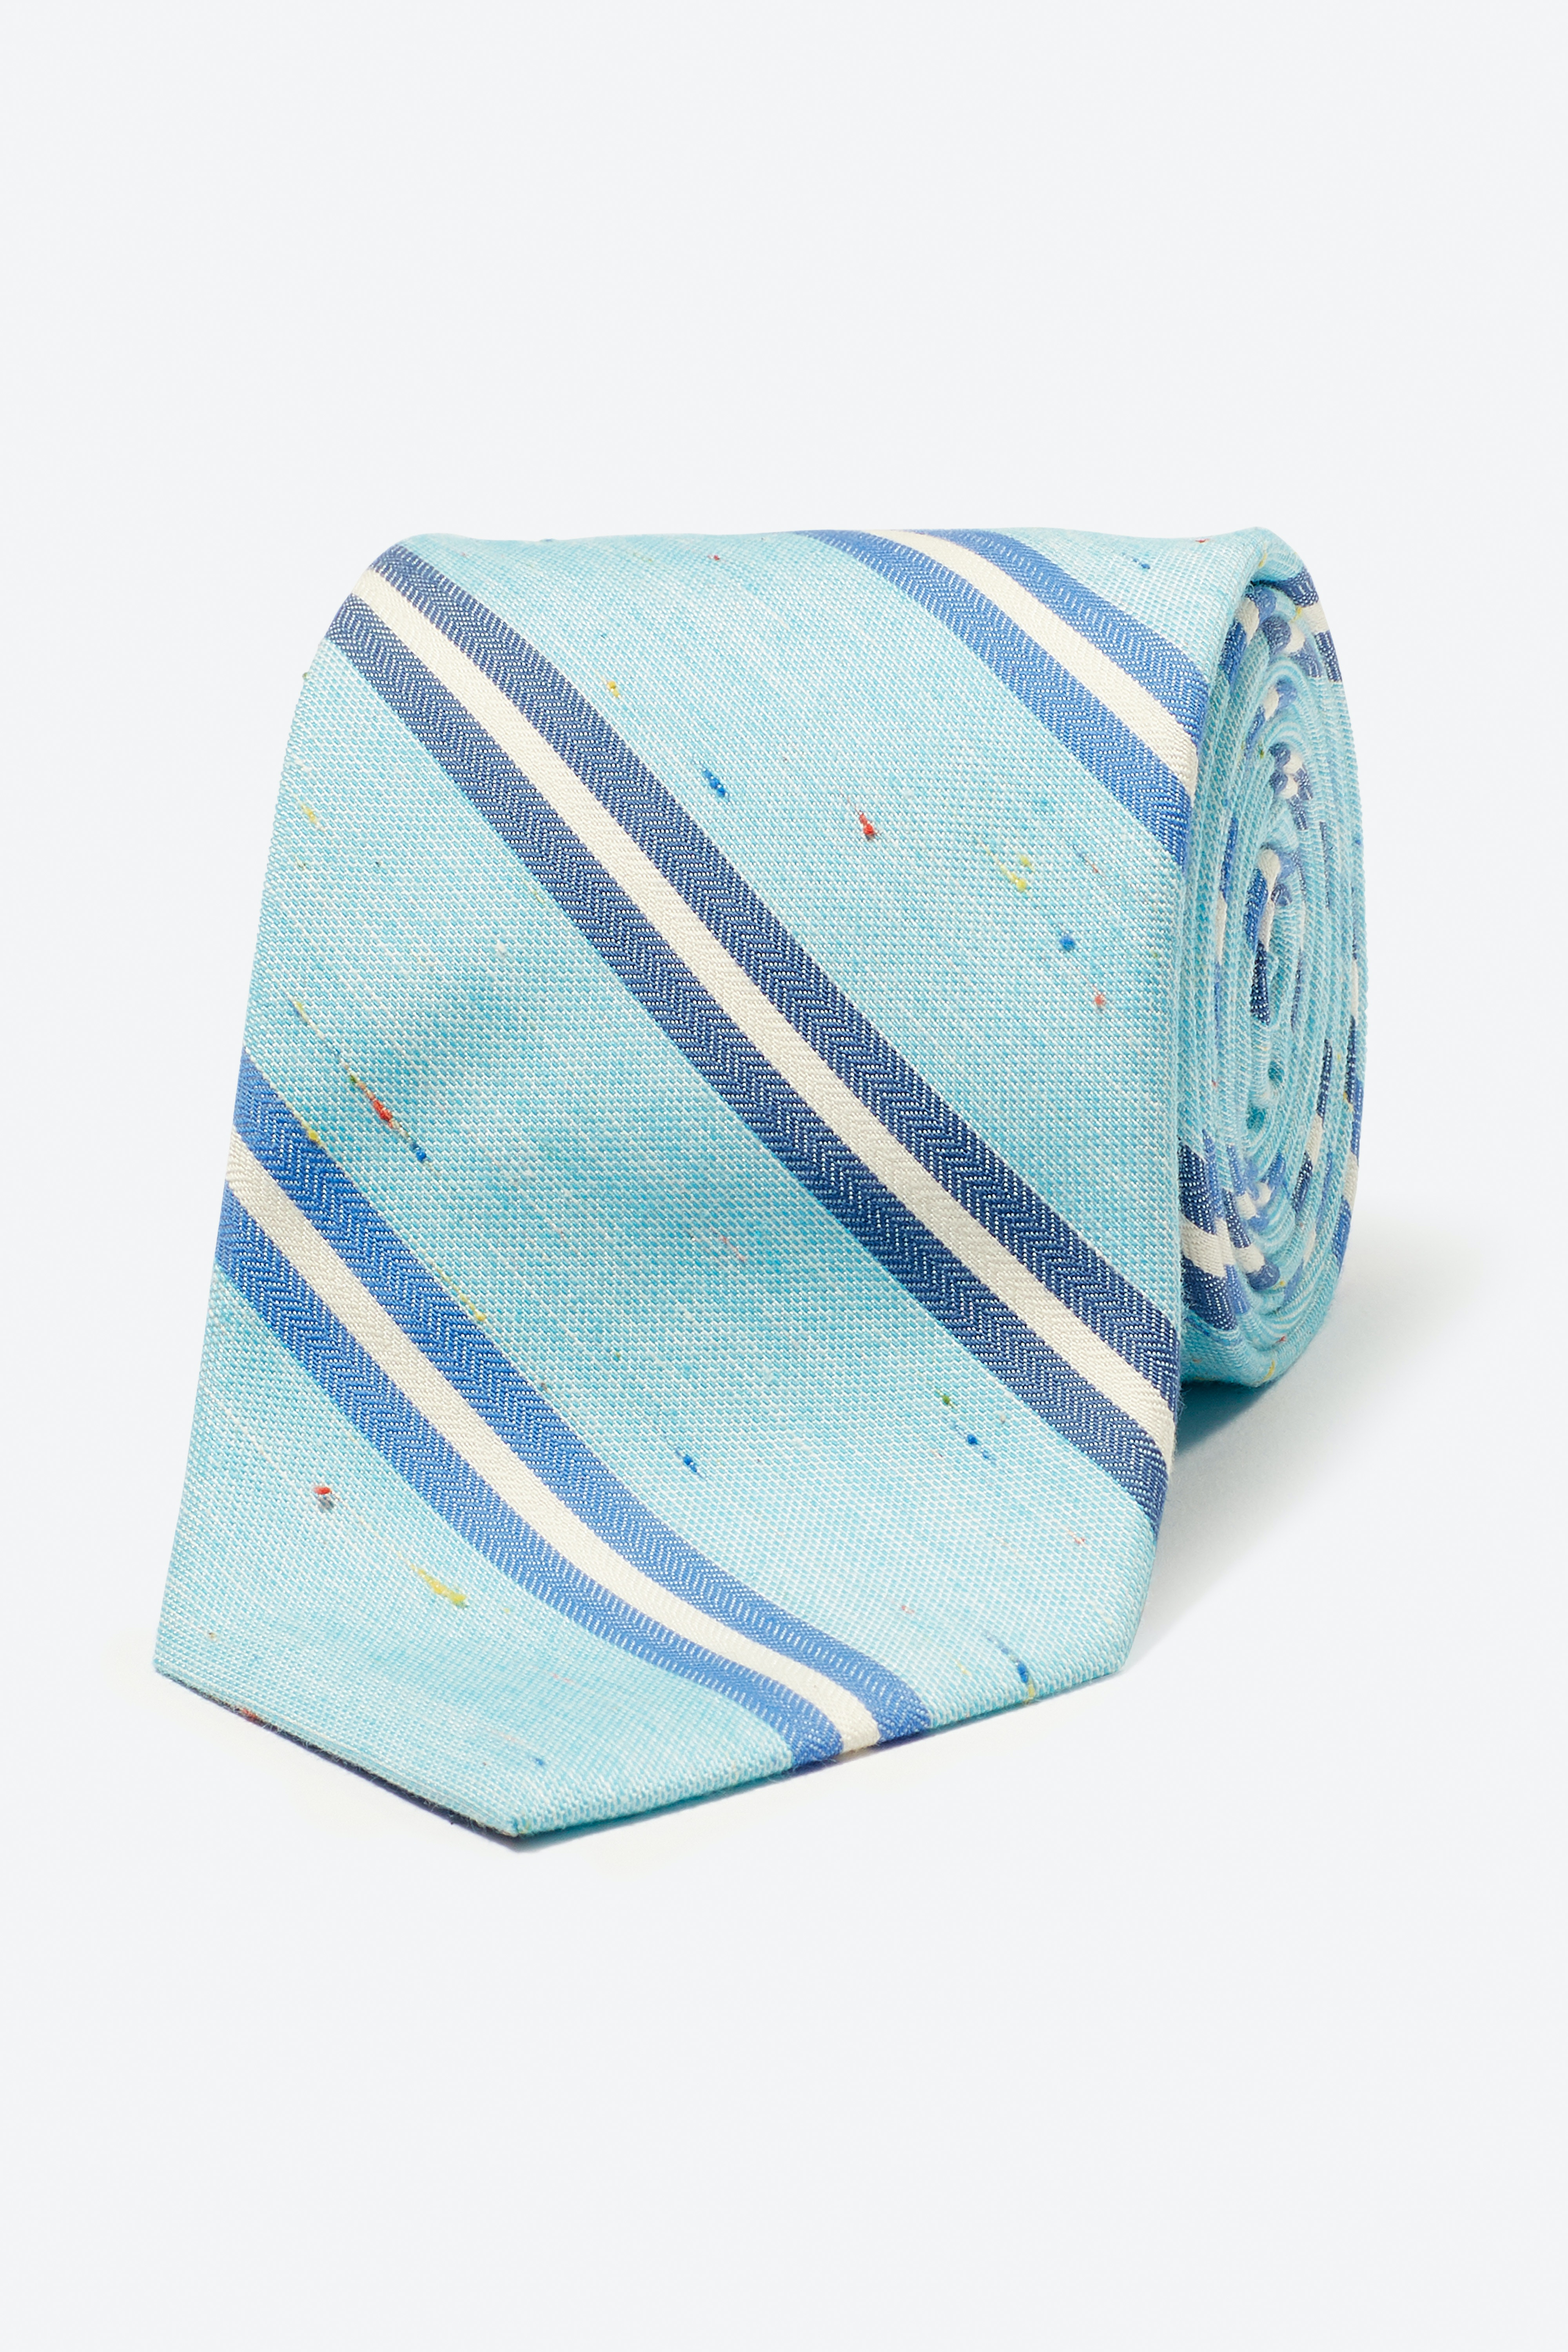 Cotton Necktie